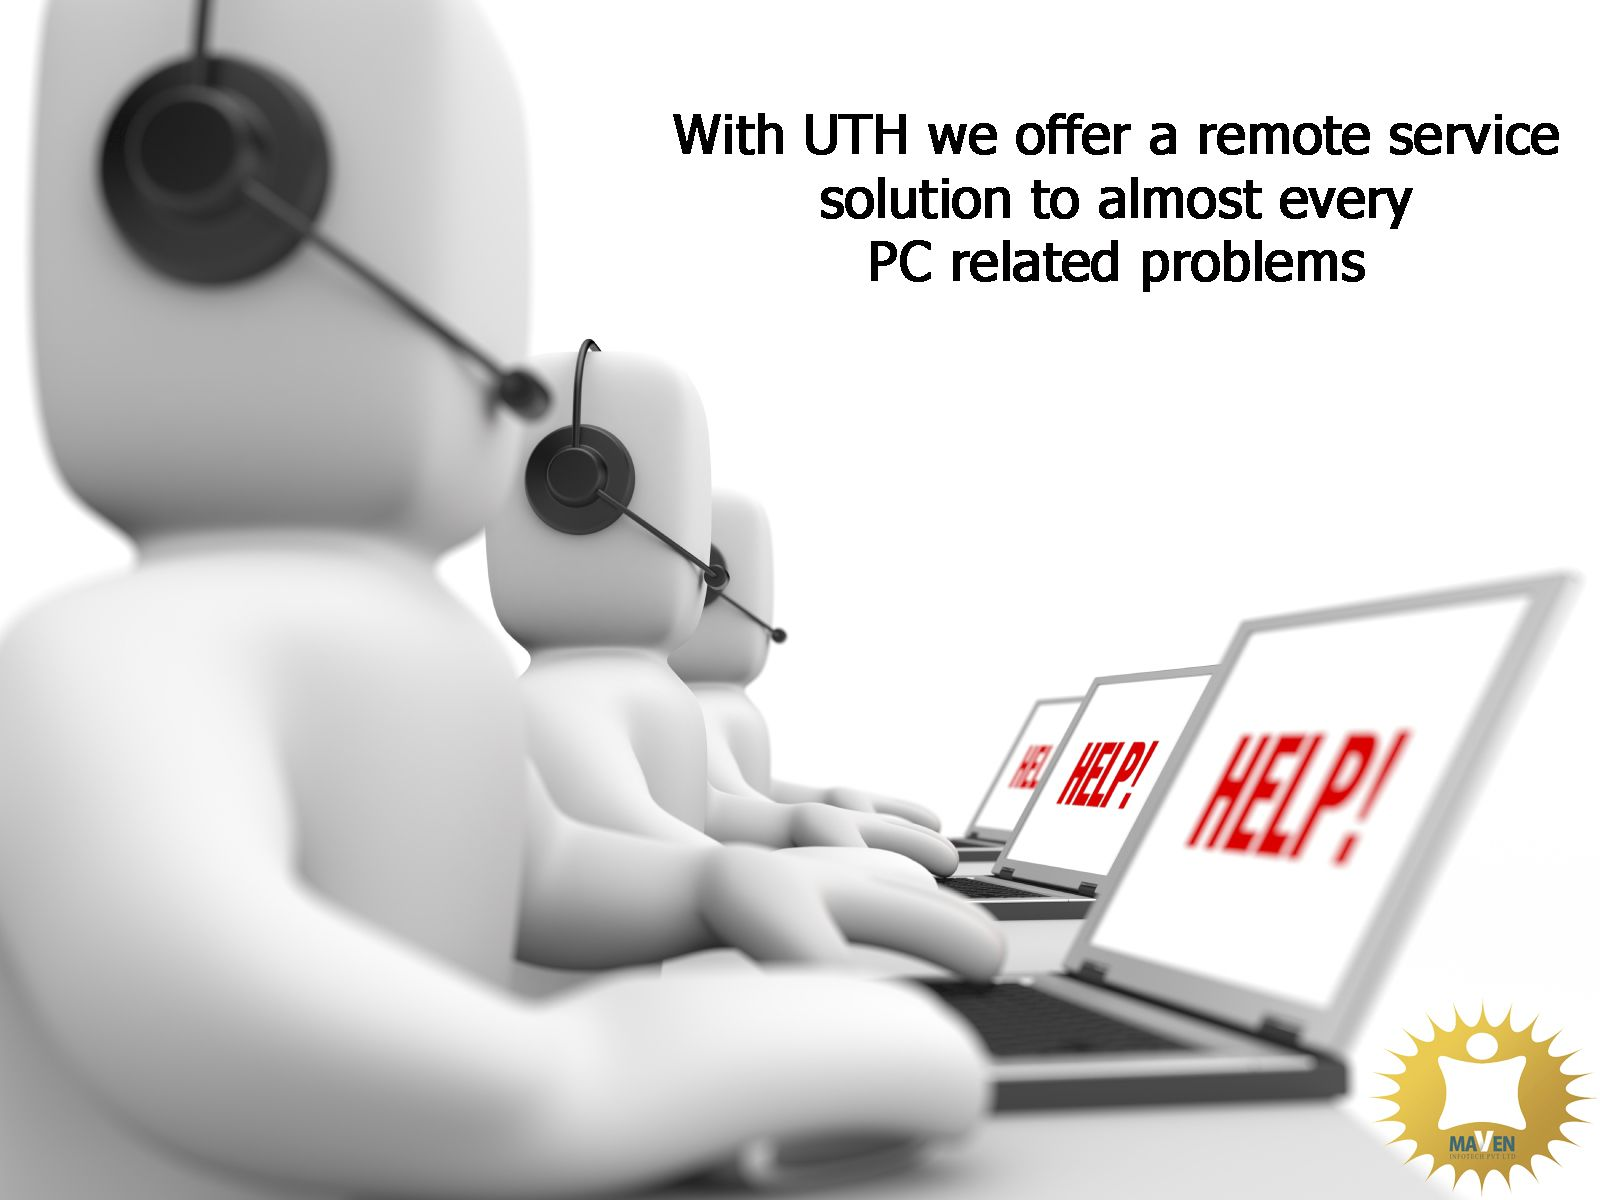 With UTH we offer a remoteservicesolution to almost